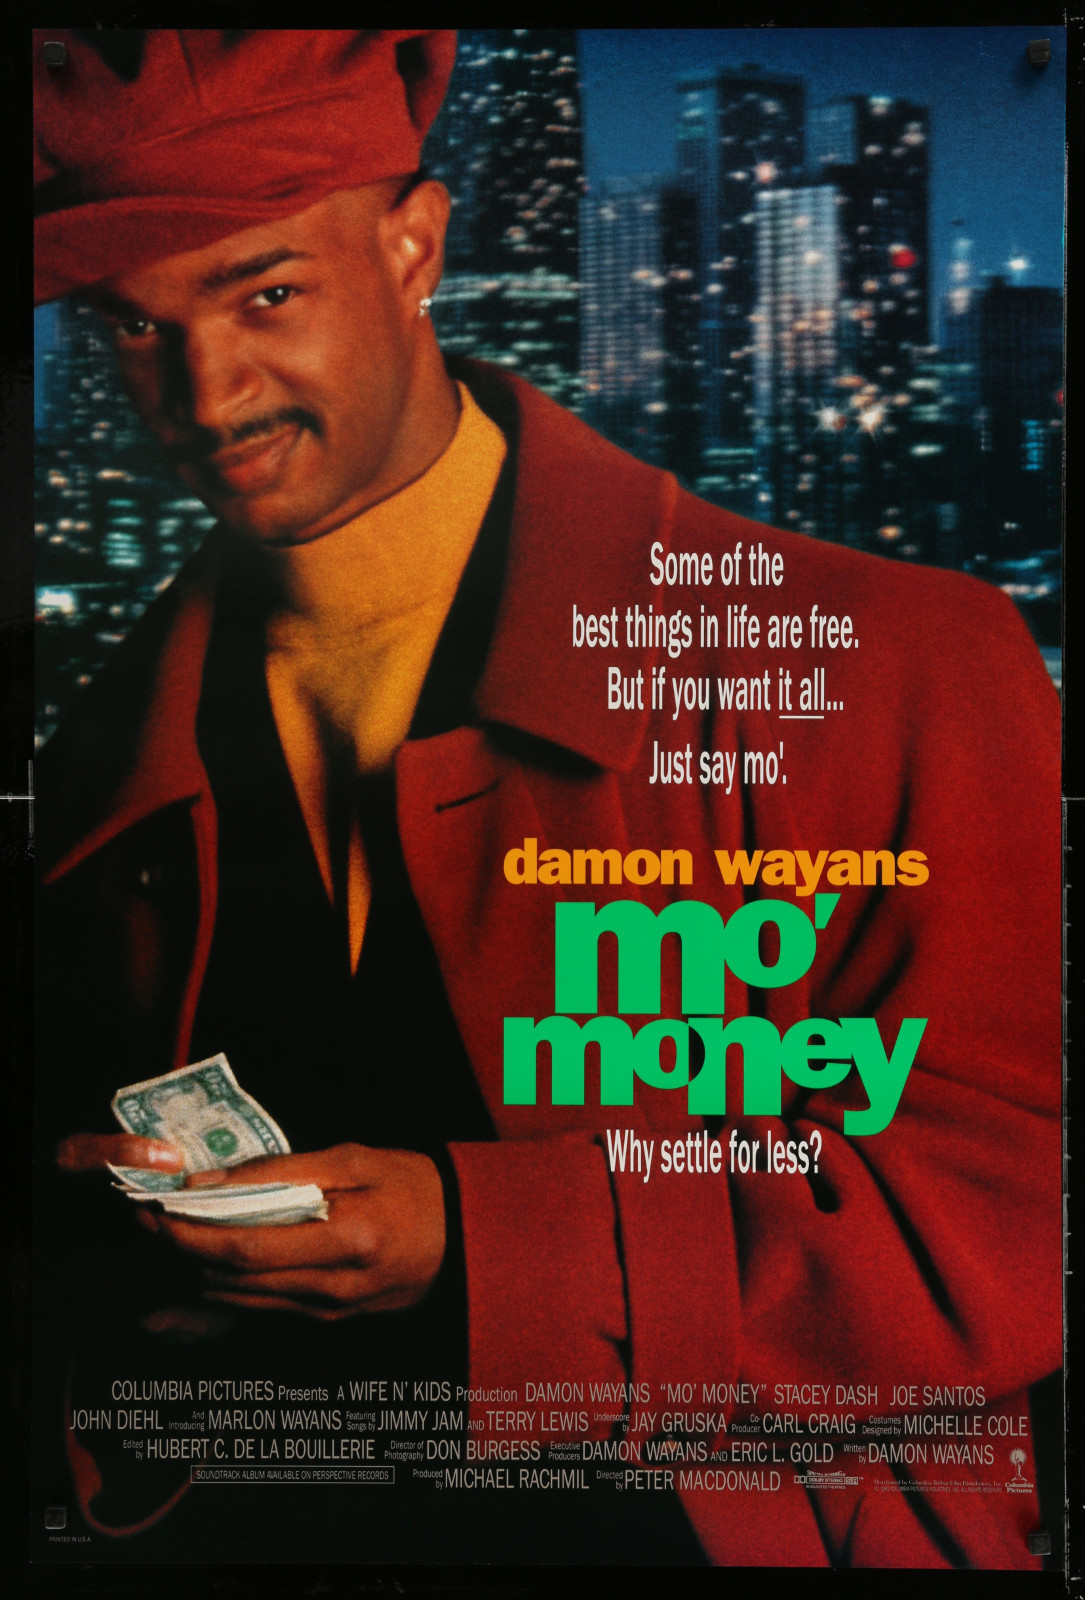 Mo' Money 2A414 A Part Of A Lot 20 Unfolded Double-Sided And Single-Sided One-Sheets '80S-90S Great Movie Images!